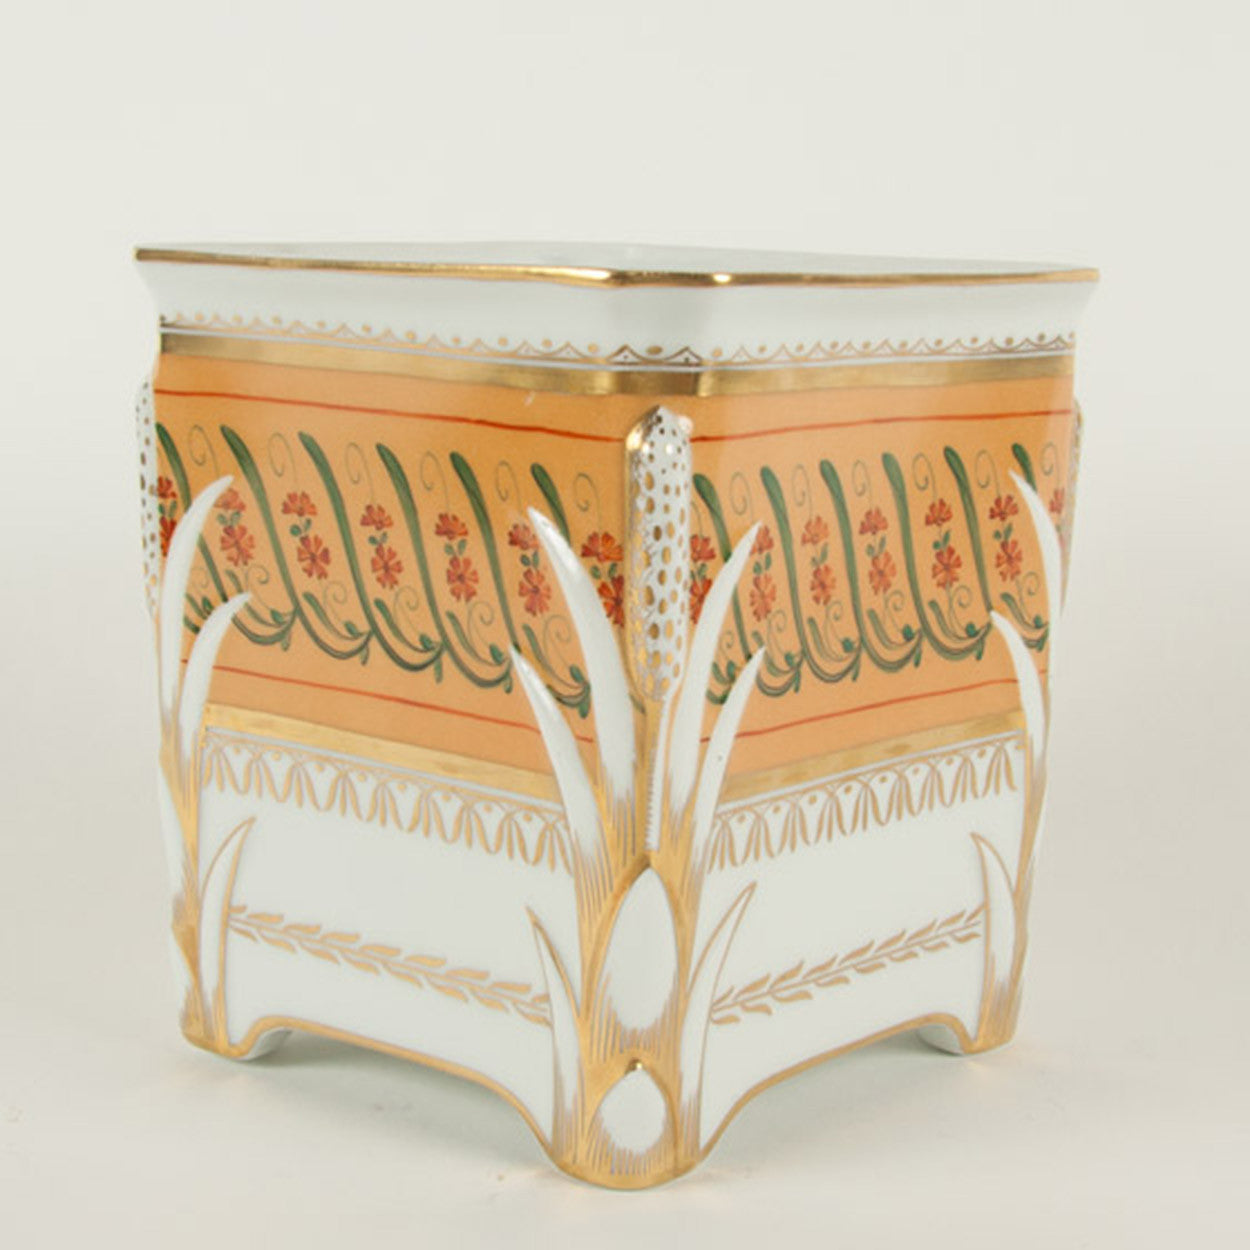 A Porcelain Directoire Style Cachepot by Le Tallec for Tiffany & CO.